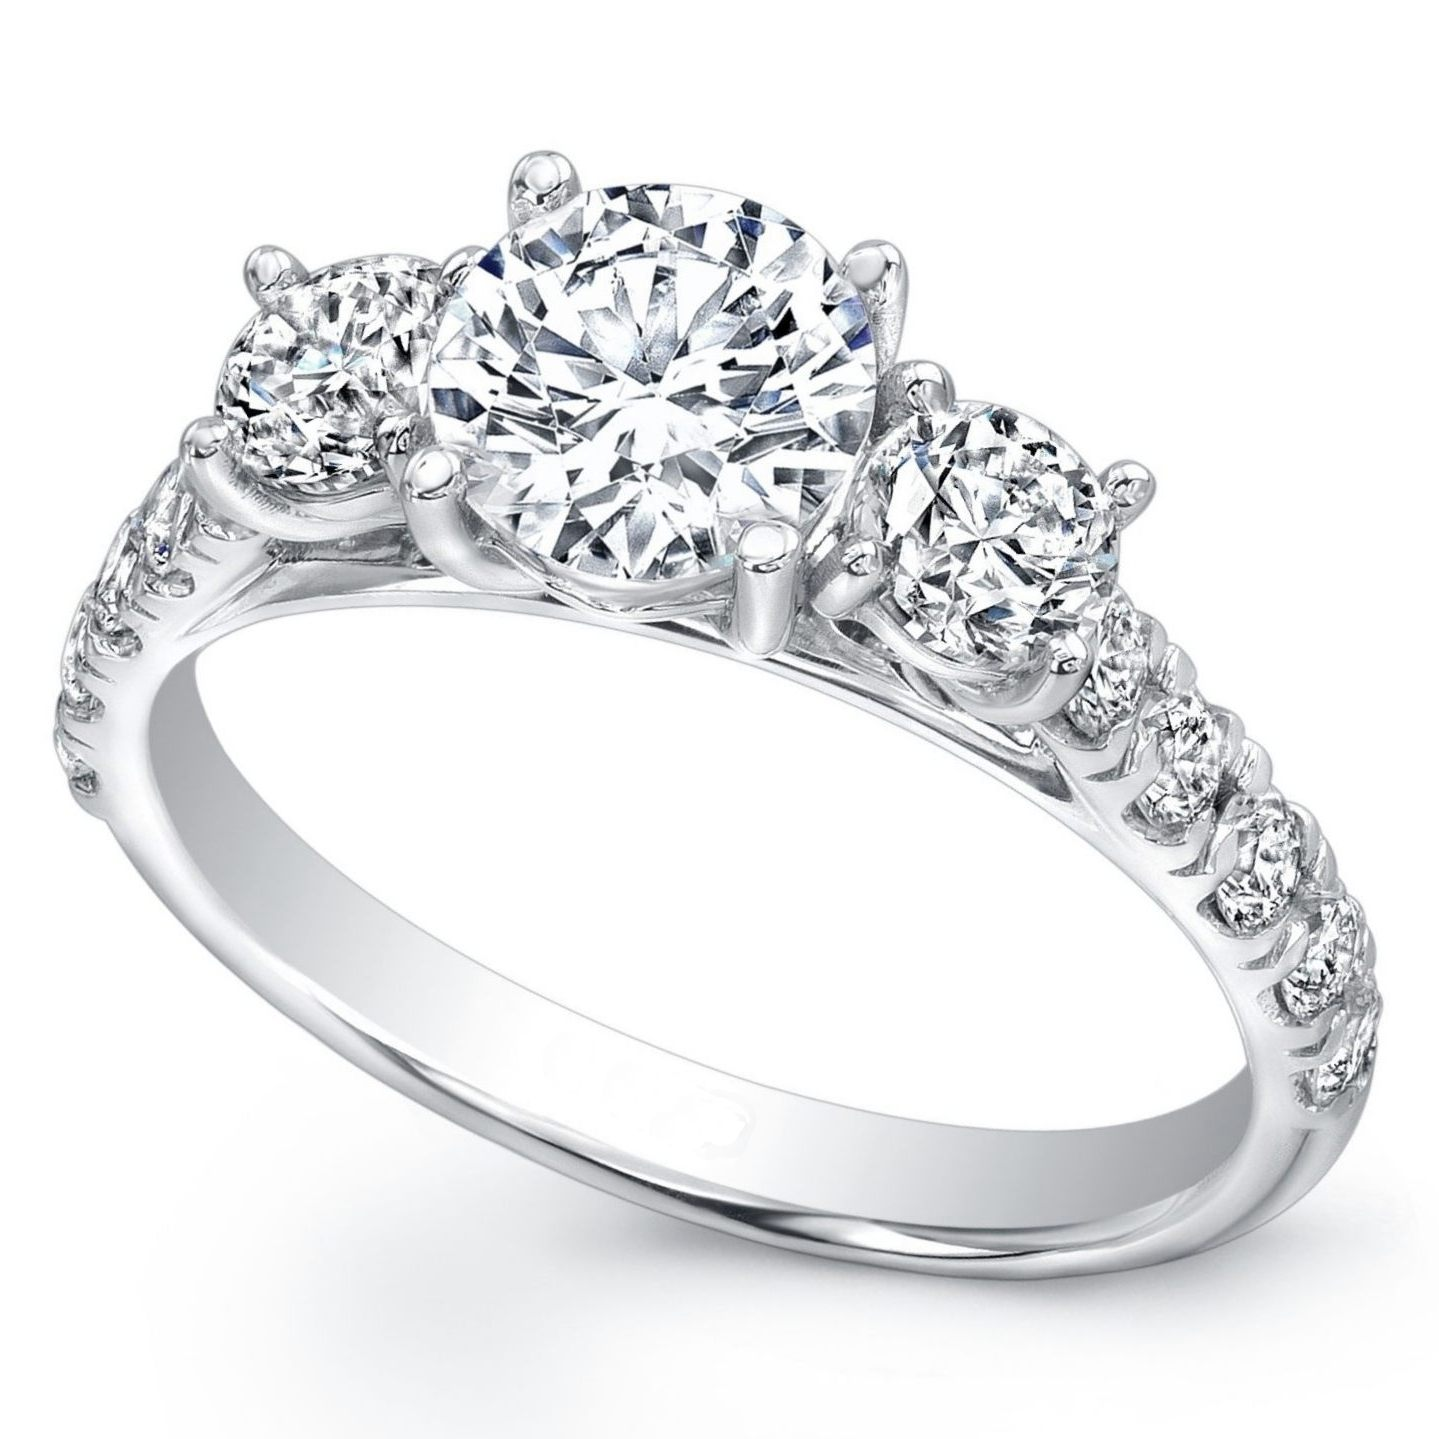 Engagement Ring -Three Stone Diamond Cathedral Engagement